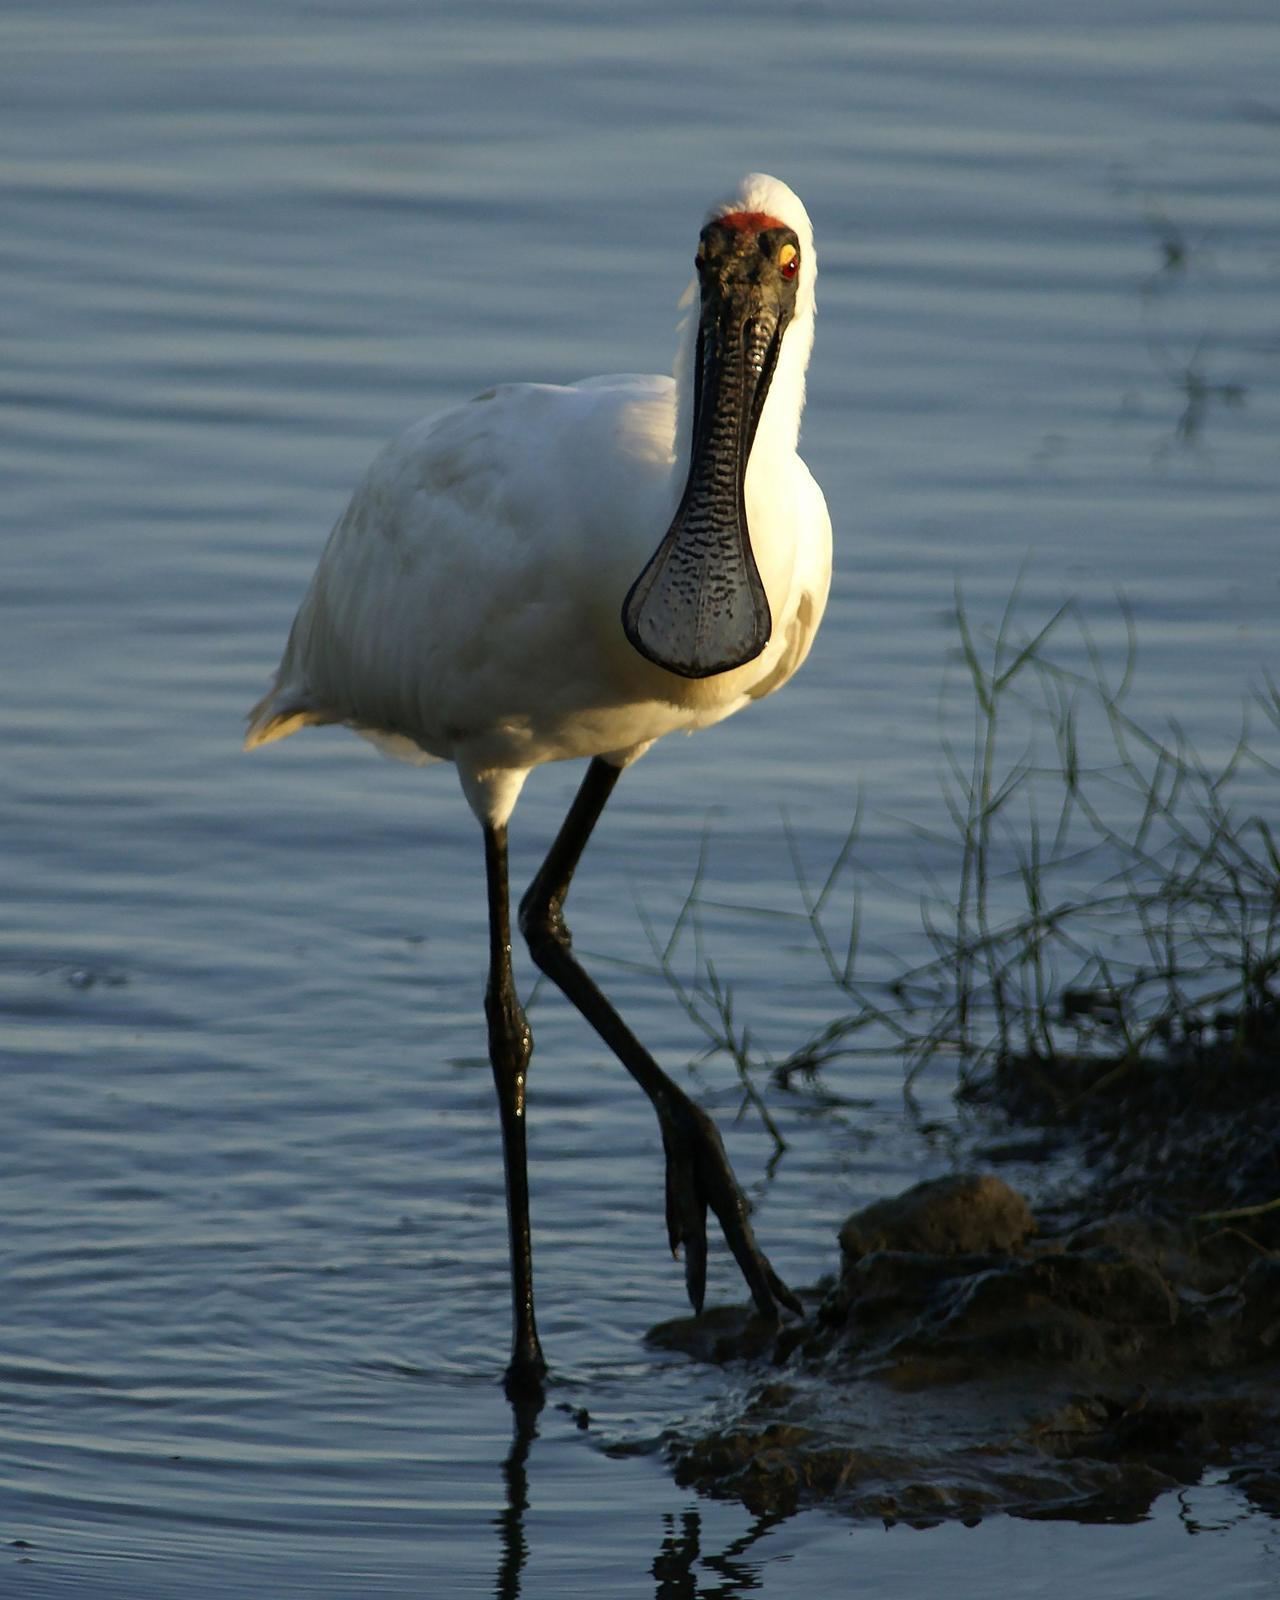 Royal Spoonbill Photo by Steve Percival